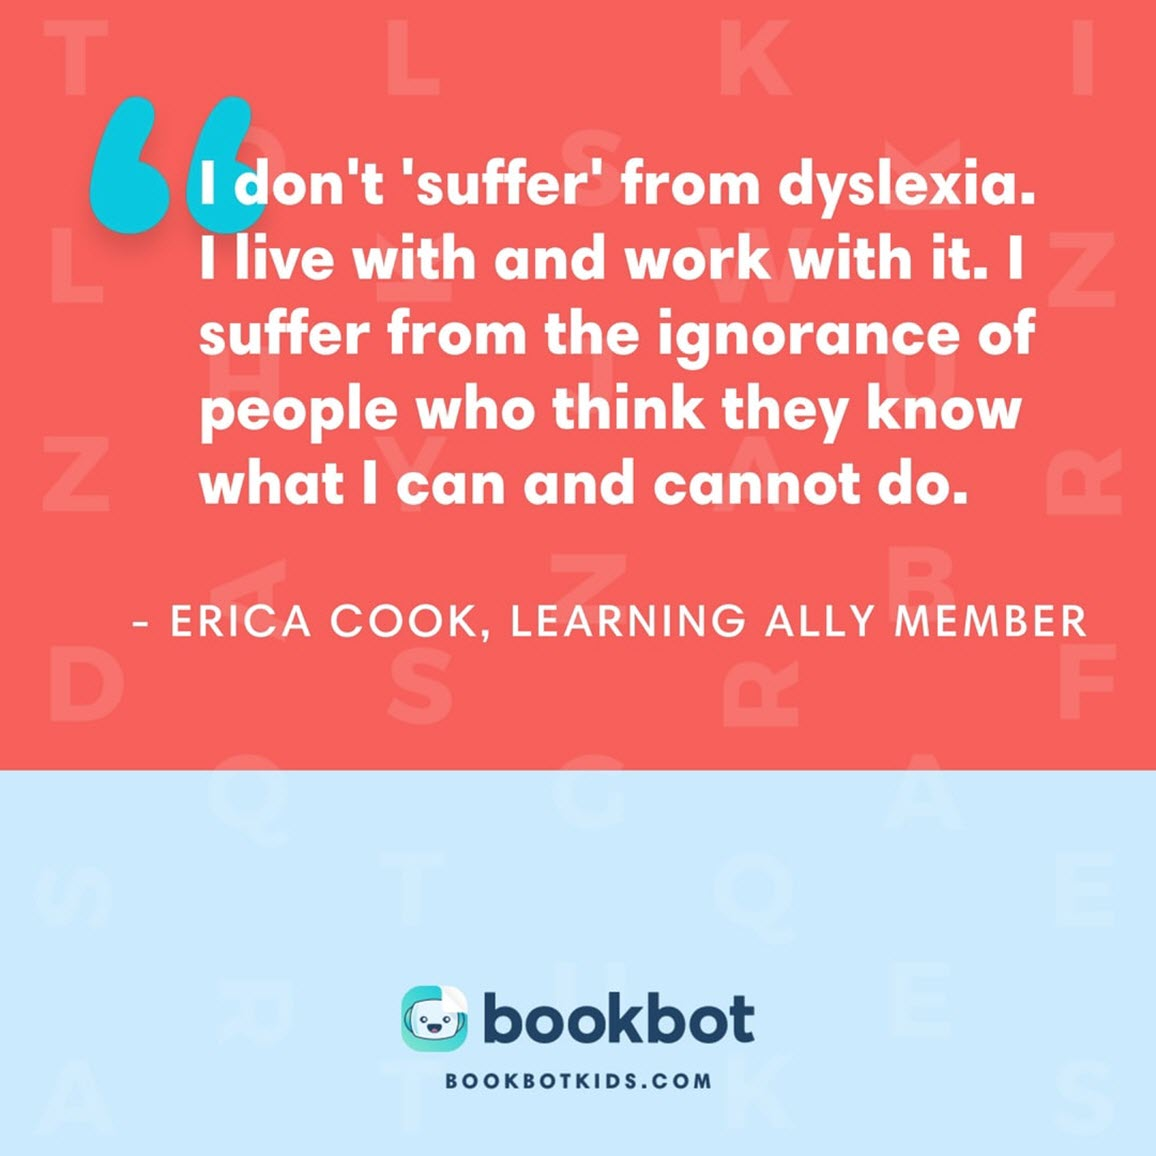 I don't 'suffer' from dyslexia. I live with and work with it. I suffer from the ignorance of people who think they know what I can and cannot do. – Erica Cook, Learning Ally member